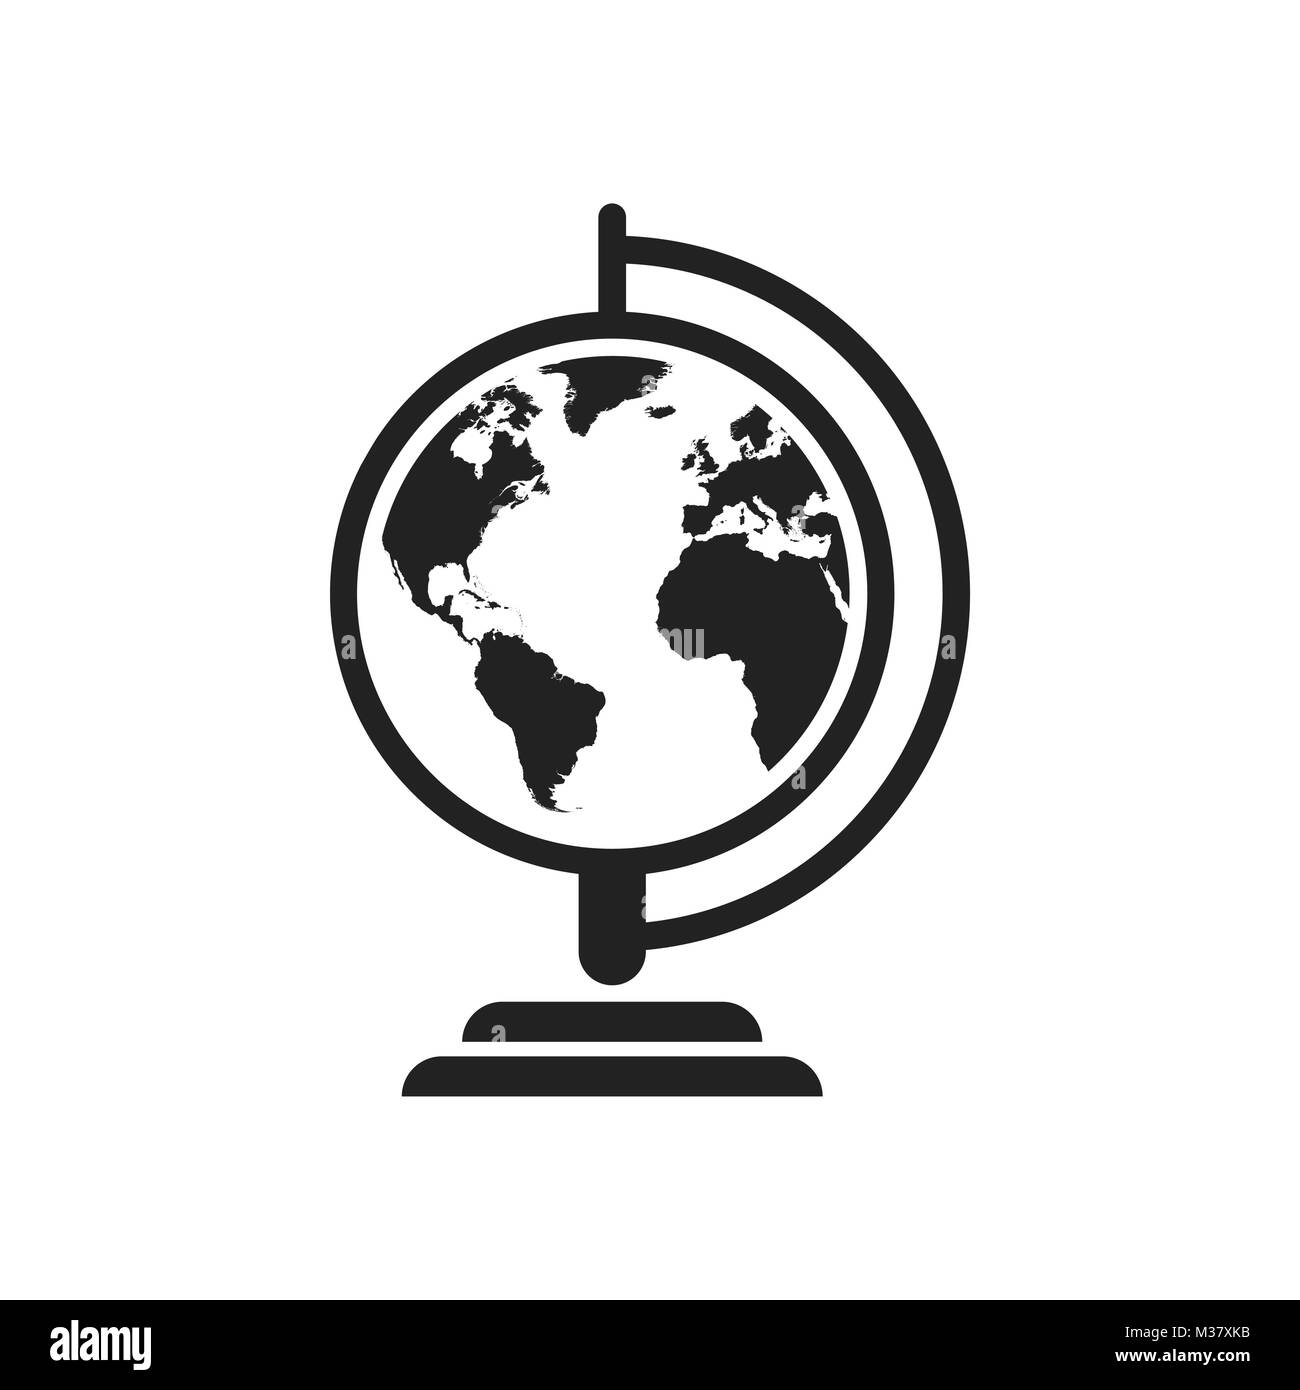 Globe world map vector icon round earth flat vector illustration globe world map vector icon round earth flat vector illustration planet business concept pictogram on white background gumiabroncs Images